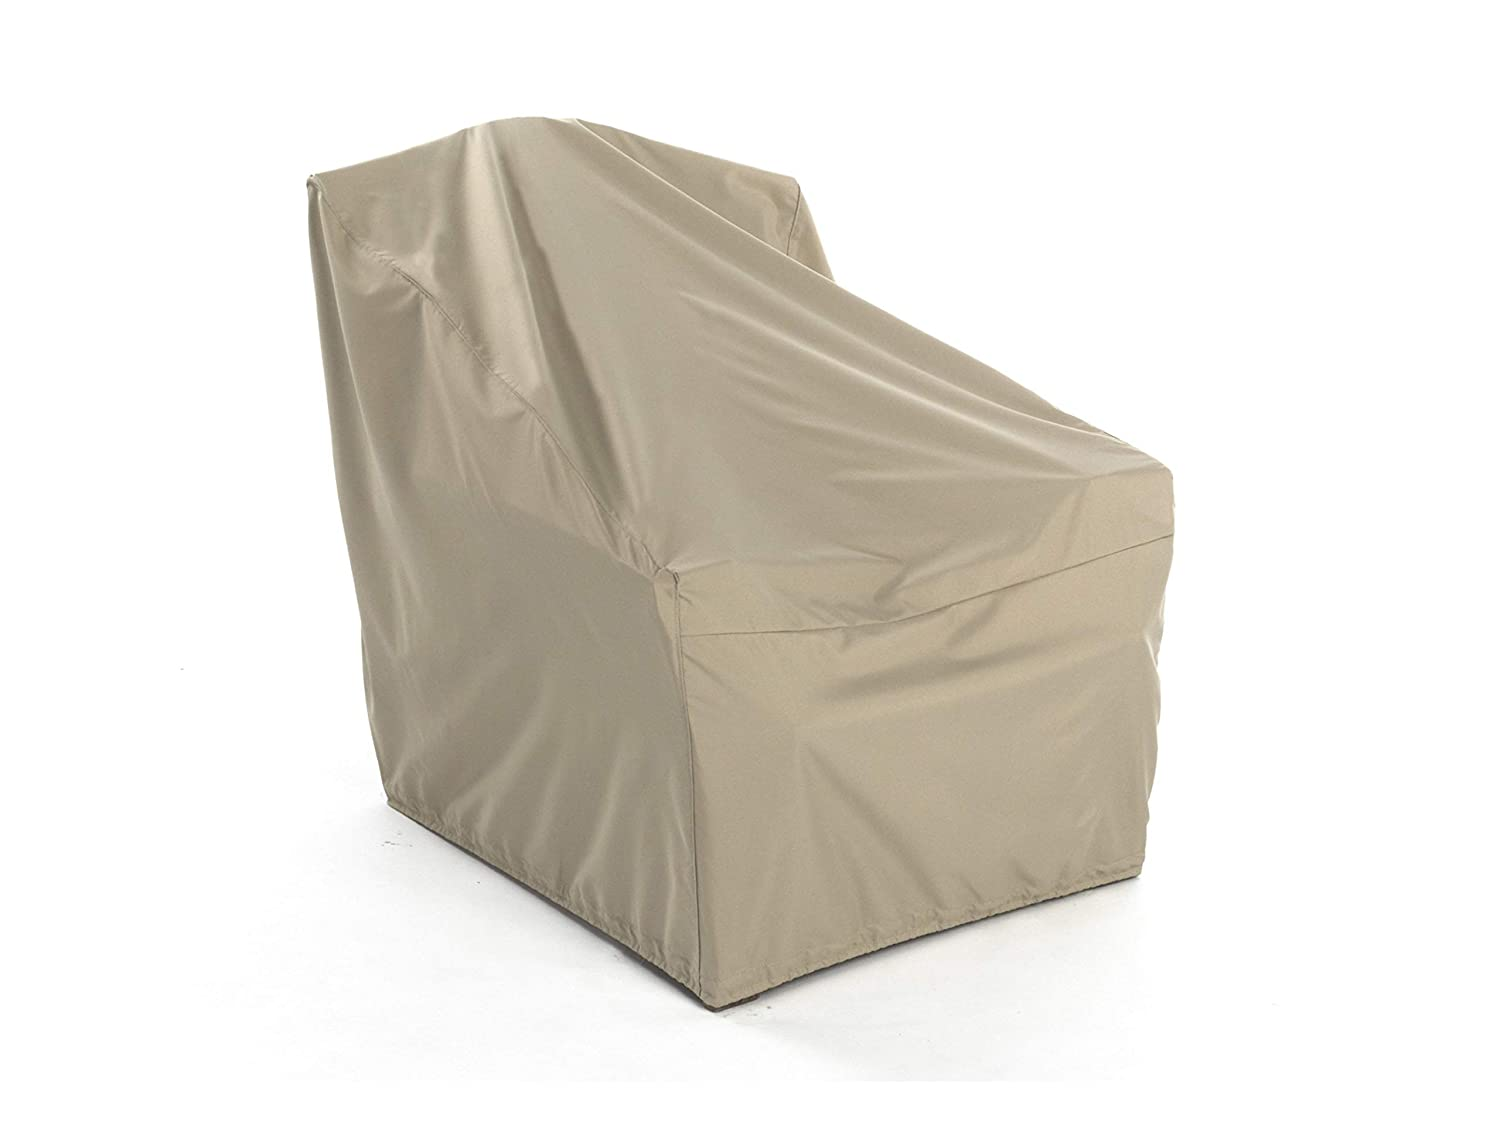 Covermates Outdoor Chair Cover 32W x 32D x 35H Elite Collection 3 YR Warranty Year Around Protection – Khaki